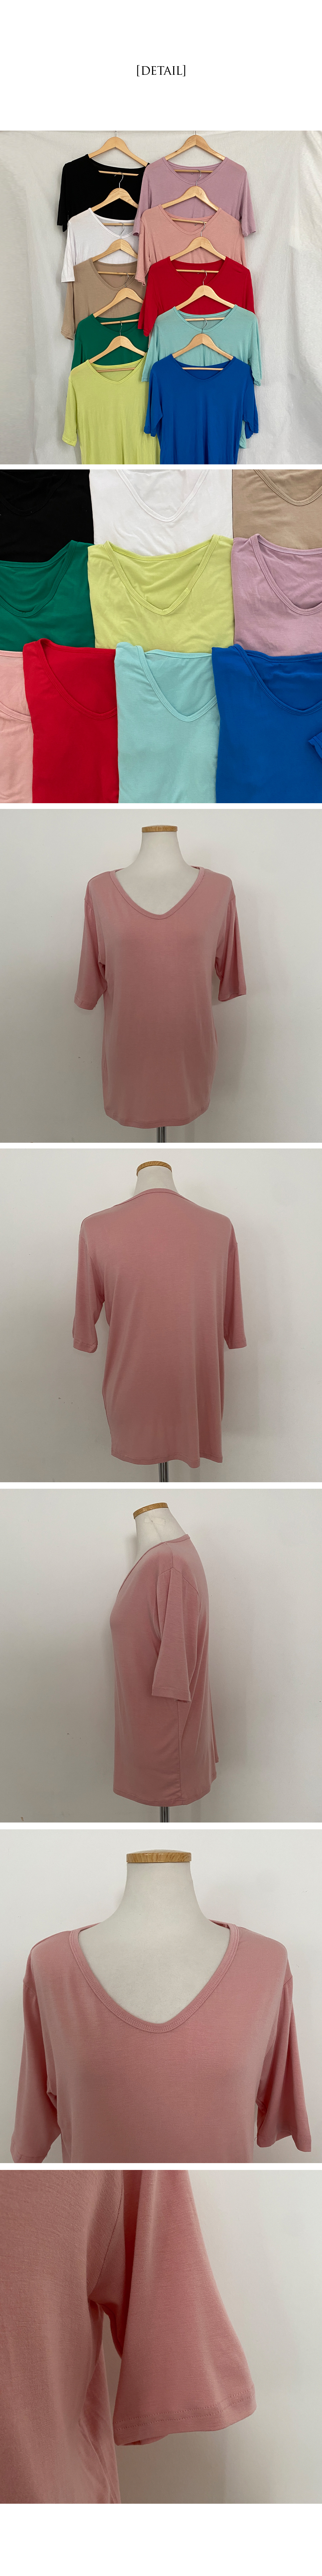 Rayon Loose-fit short-sleeved T-shirt for summer